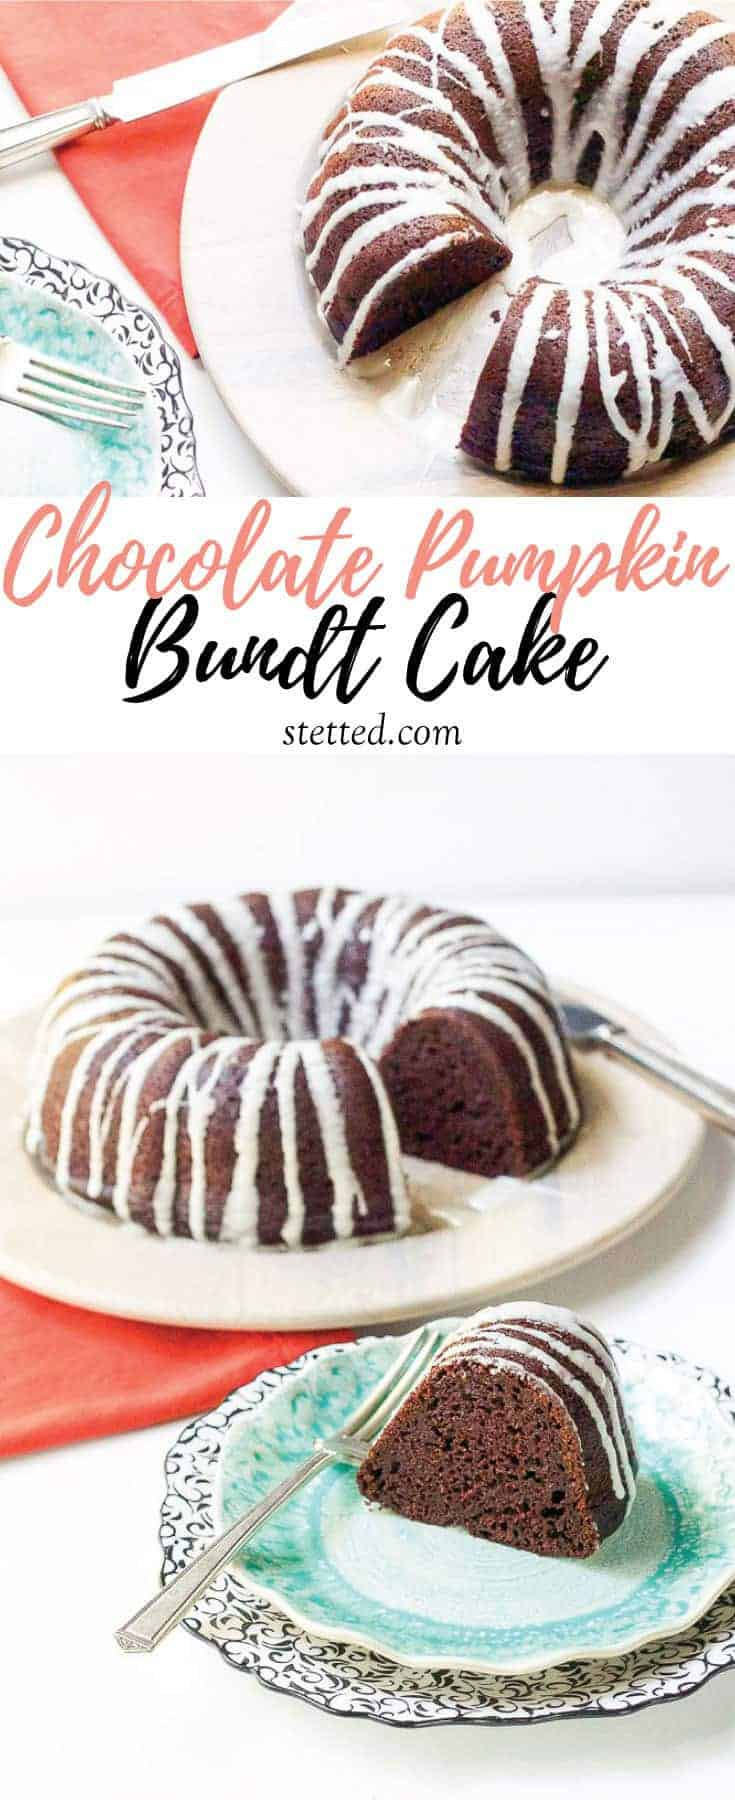 Chocolate pumpkin bundt cake changes up the standard holiday dessert offerings.